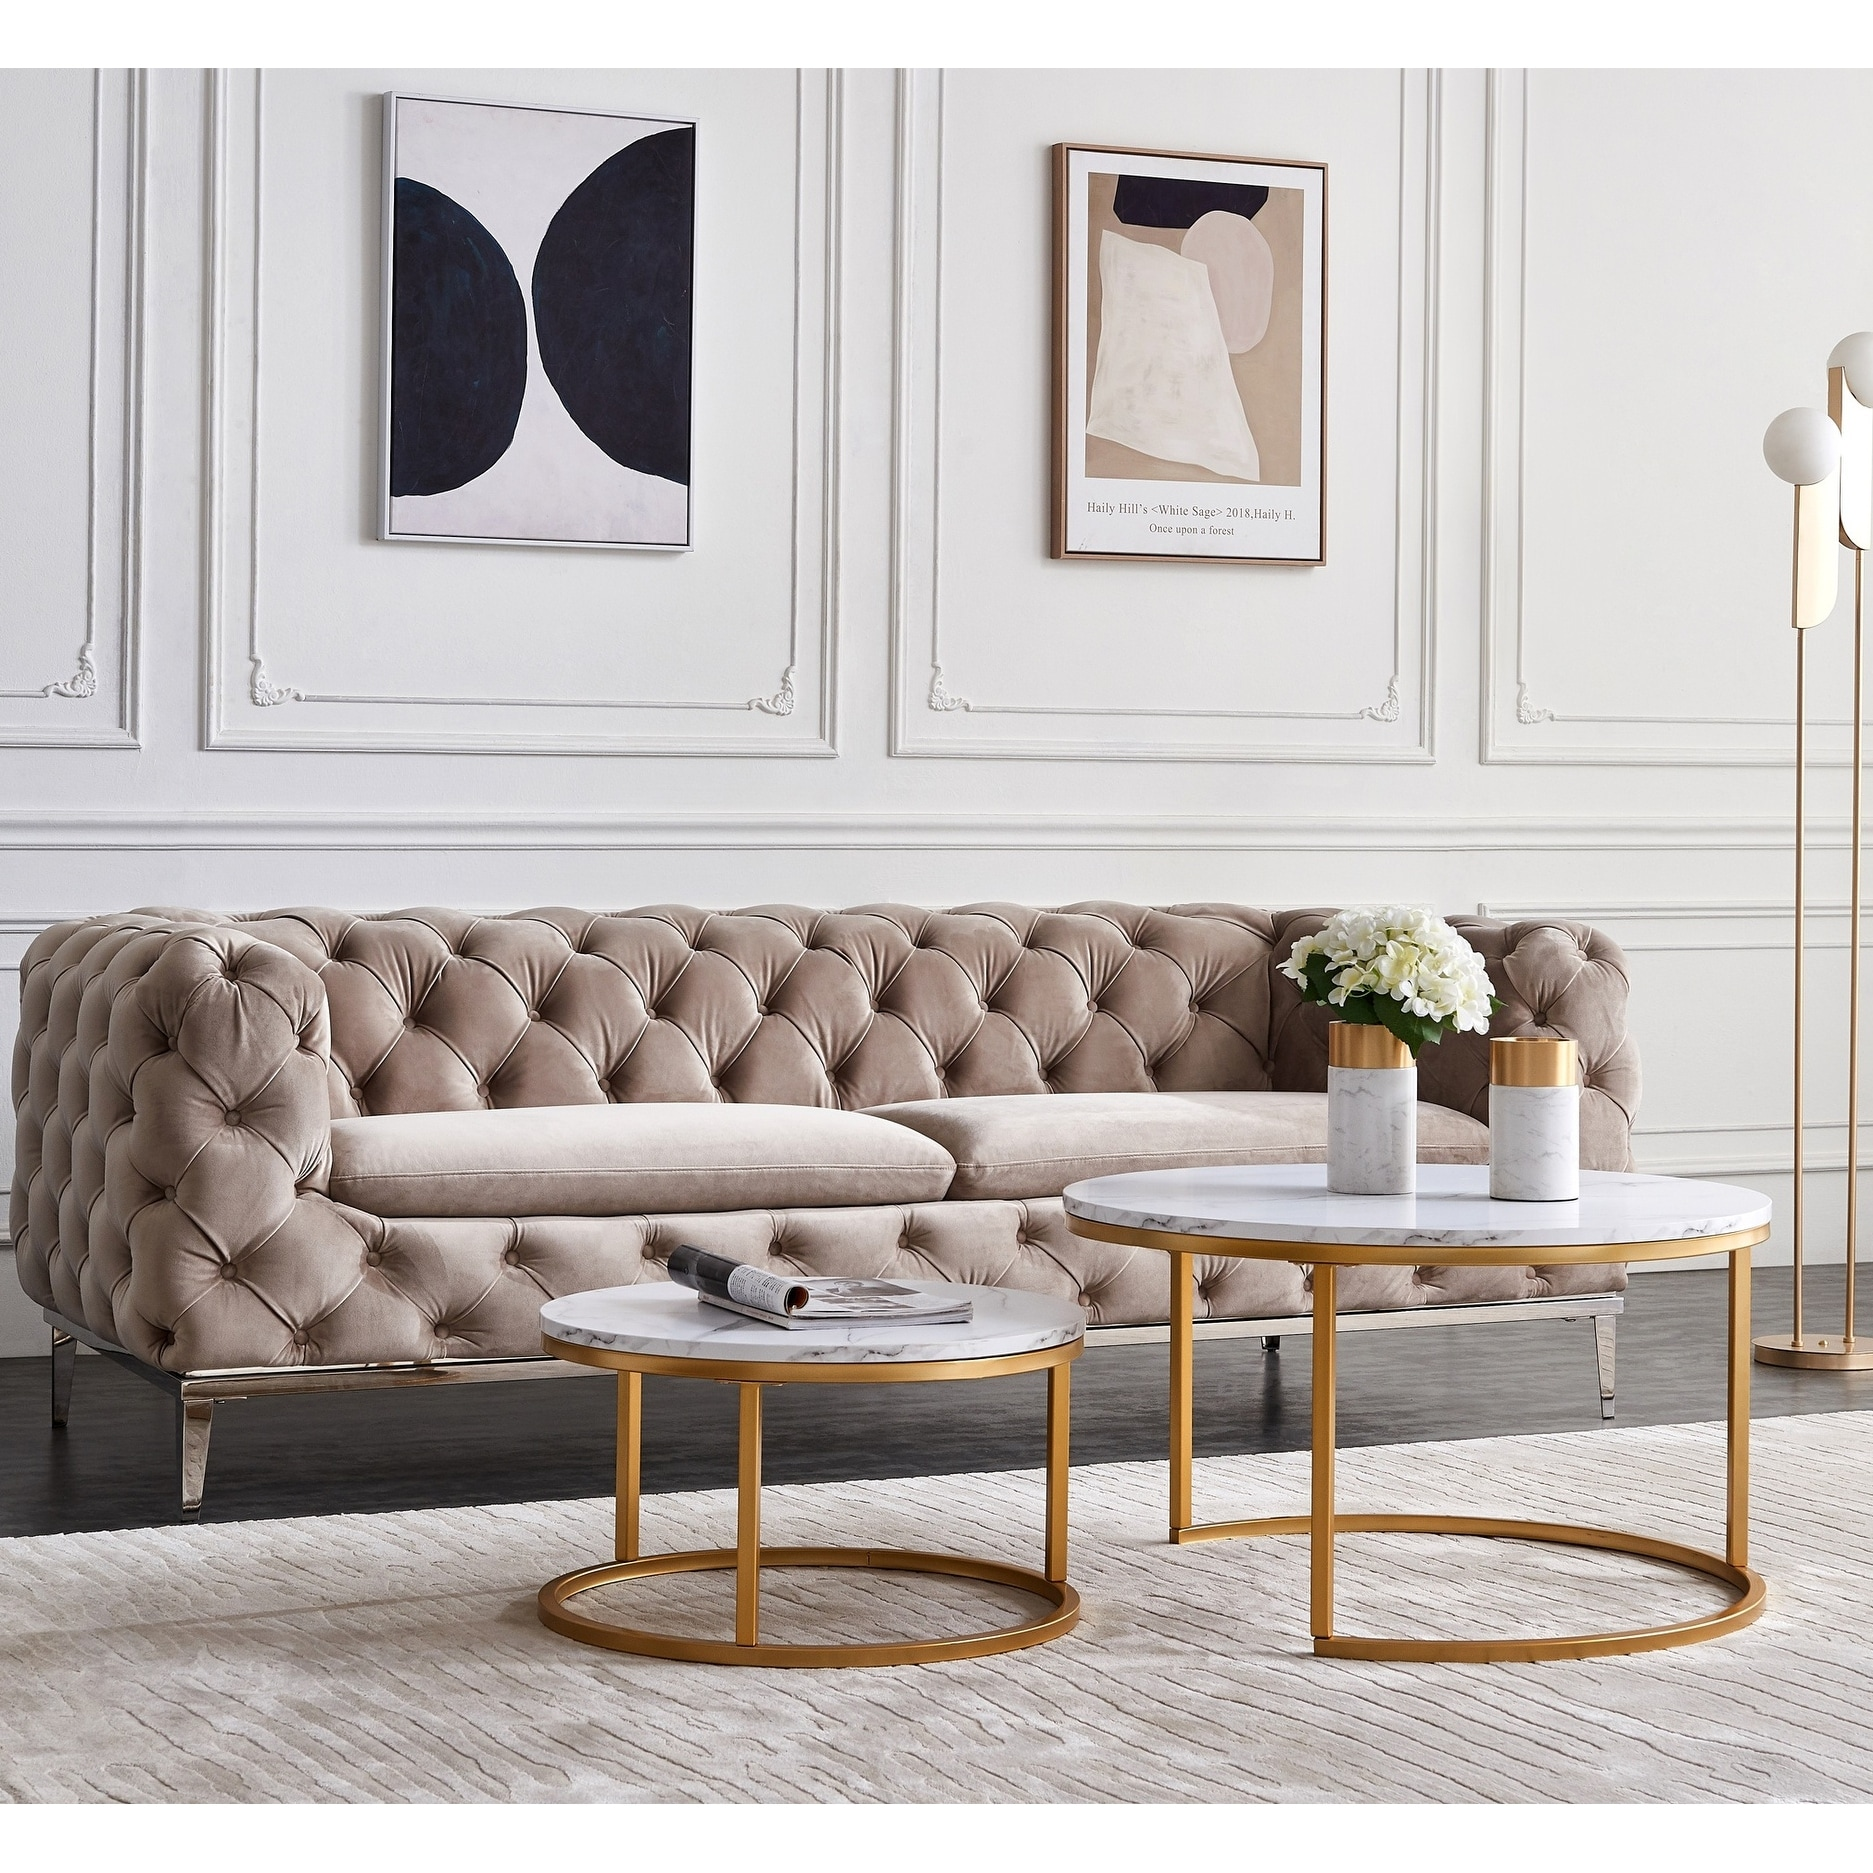 Industrial Nesting-Tables Living Room Coffee Table Sets Of 2, Wood & Metal Legs, Overlapping Ending Tables - Overstock - 31524560 - White+Gold - Wood/Laminate